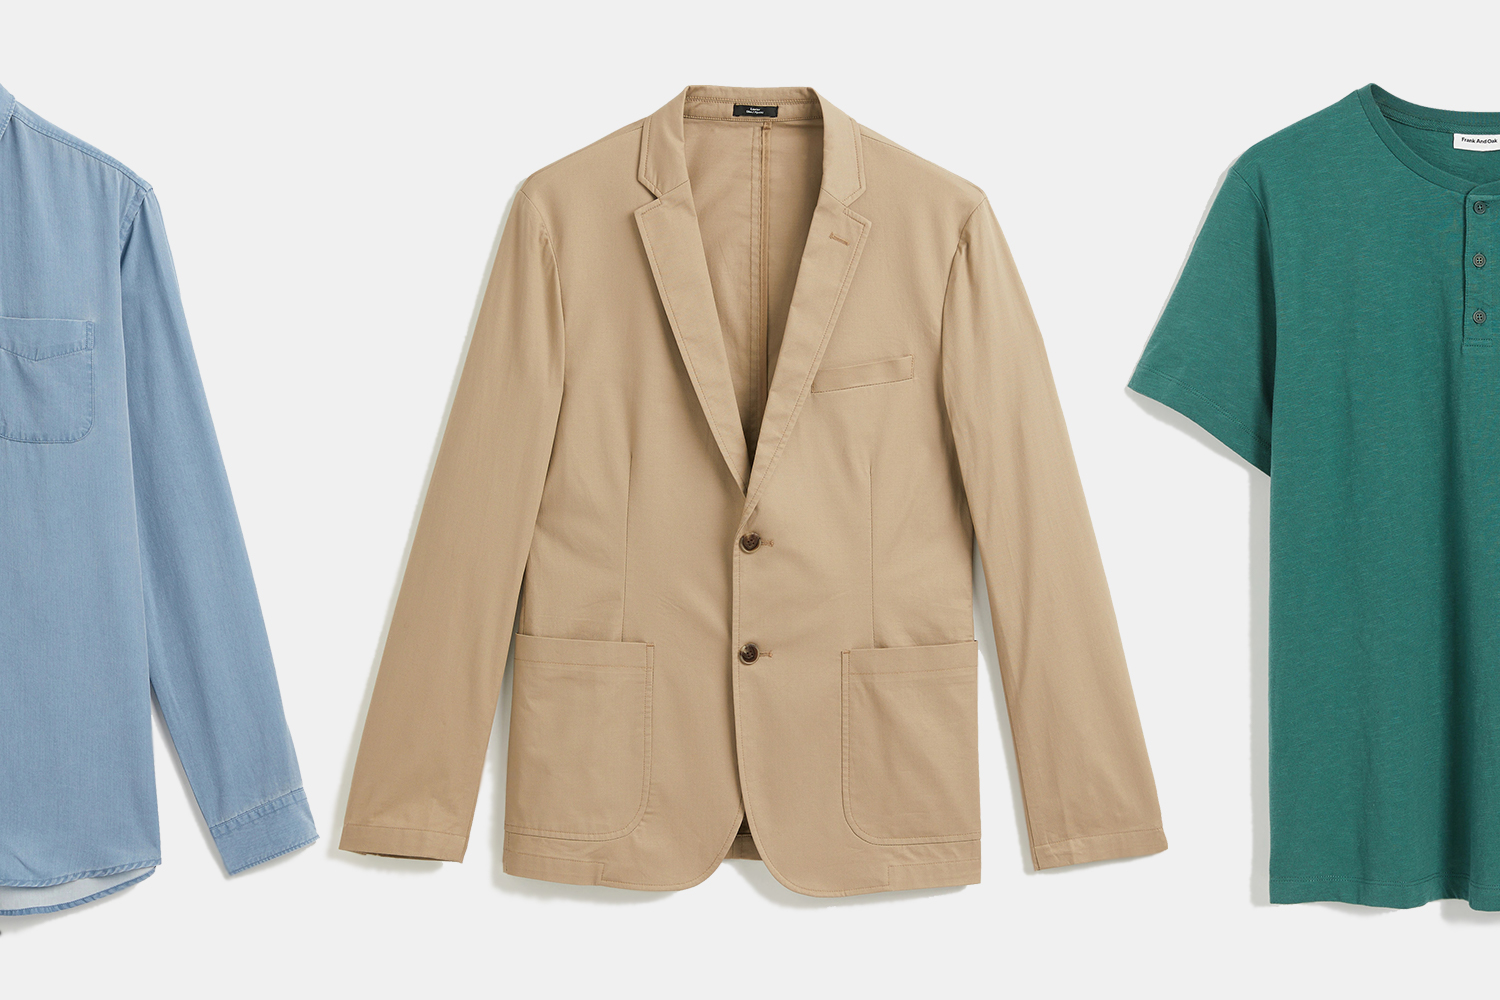 Frank And Oak Blazer and Shirts